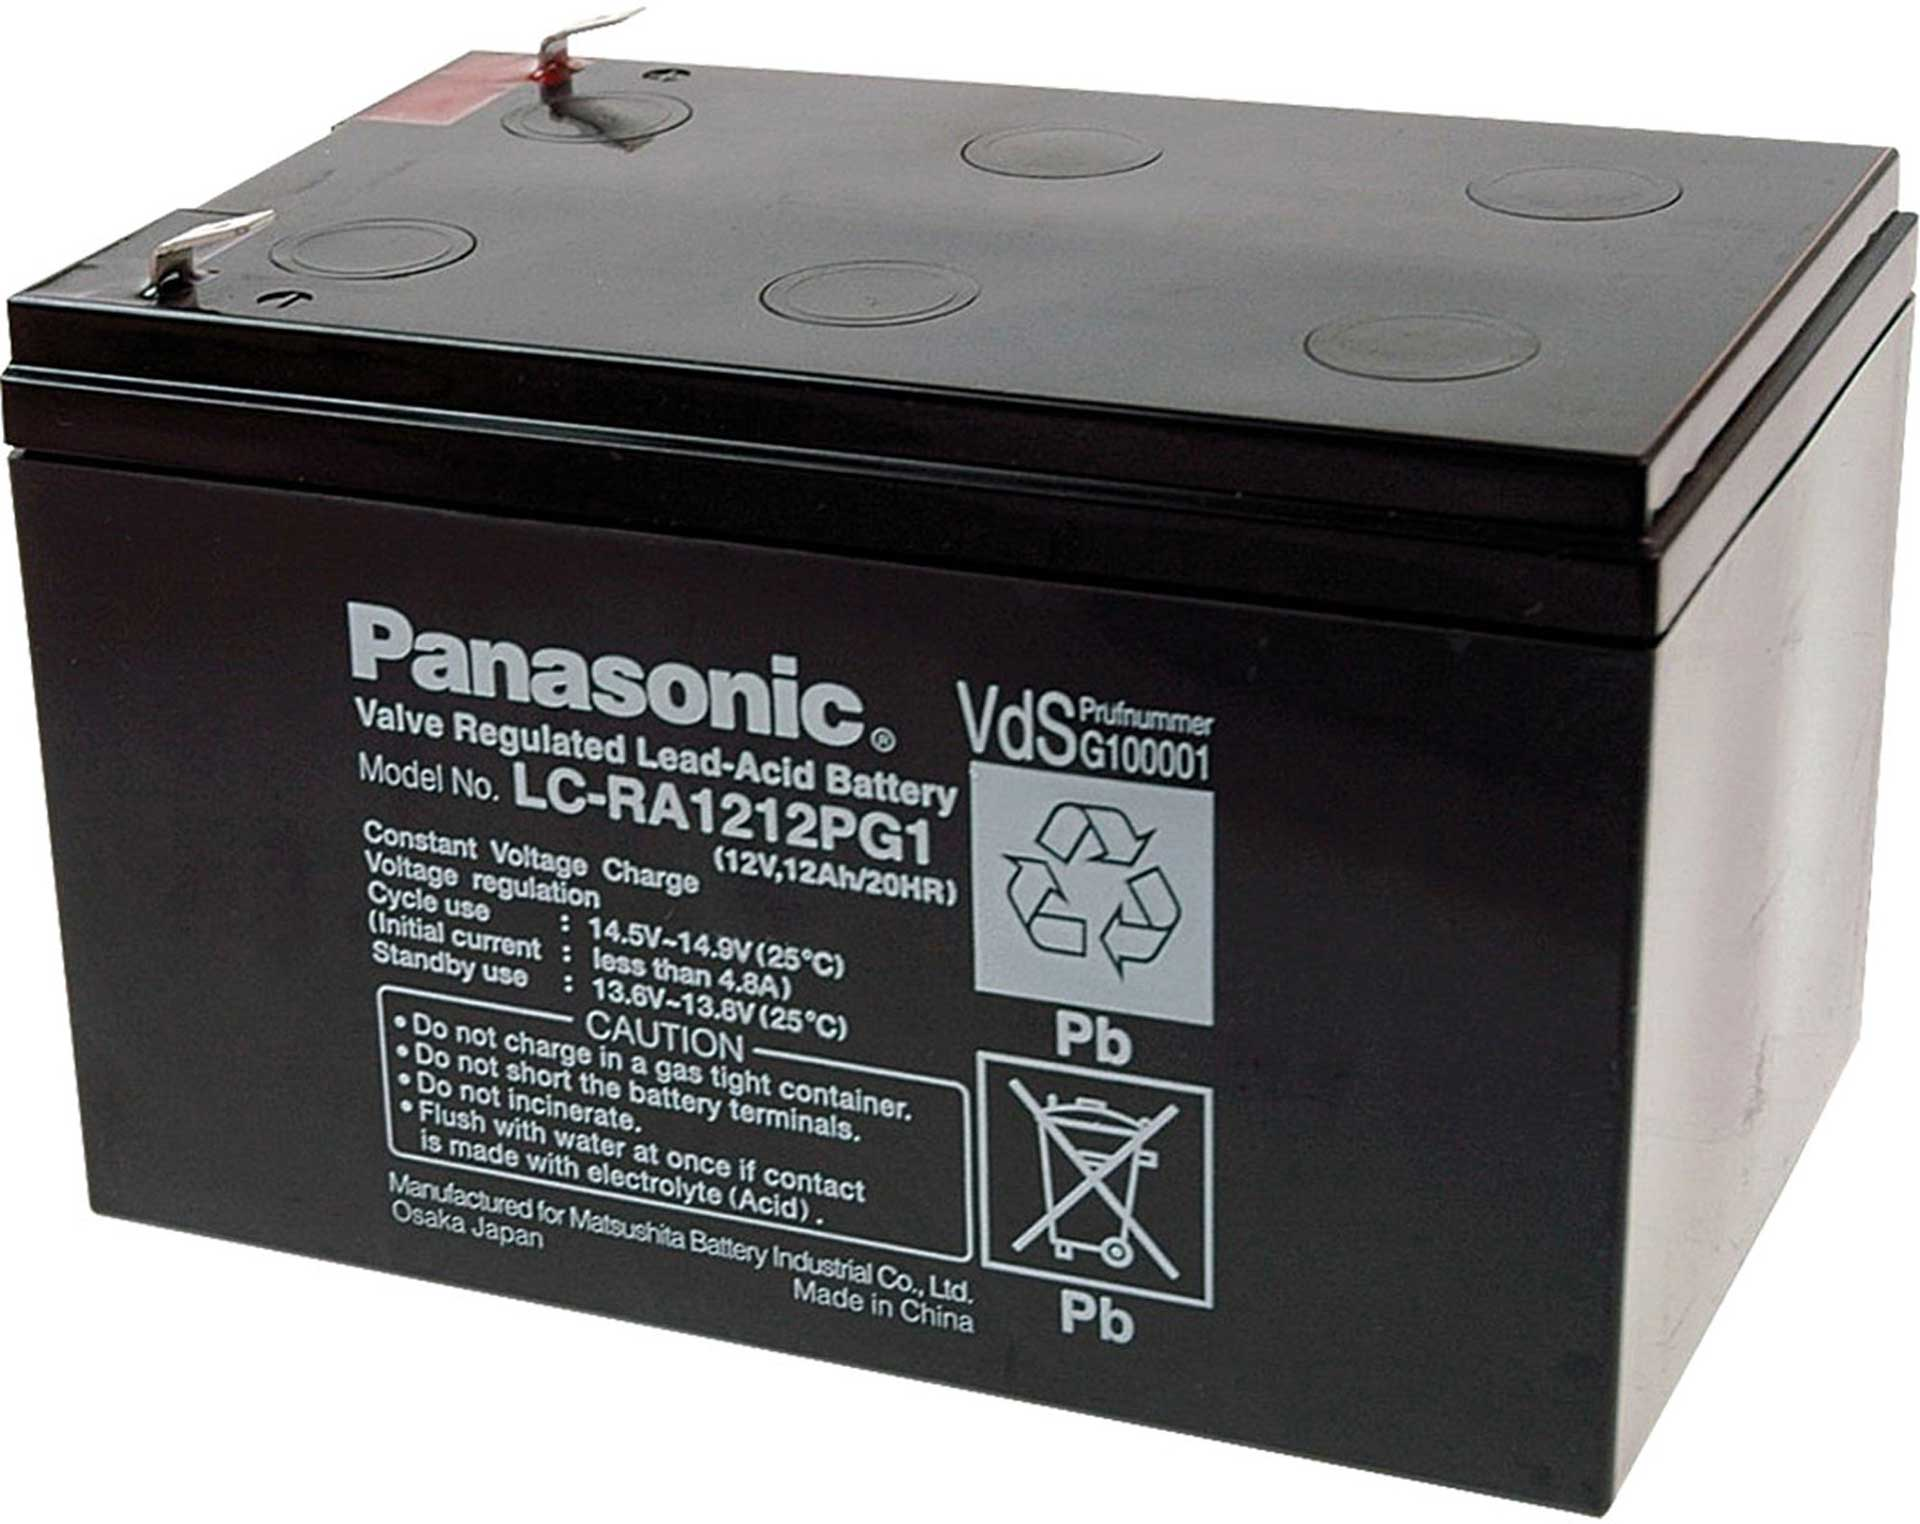 PANASONIC LEAD ACID BATTERY 12V/12AH